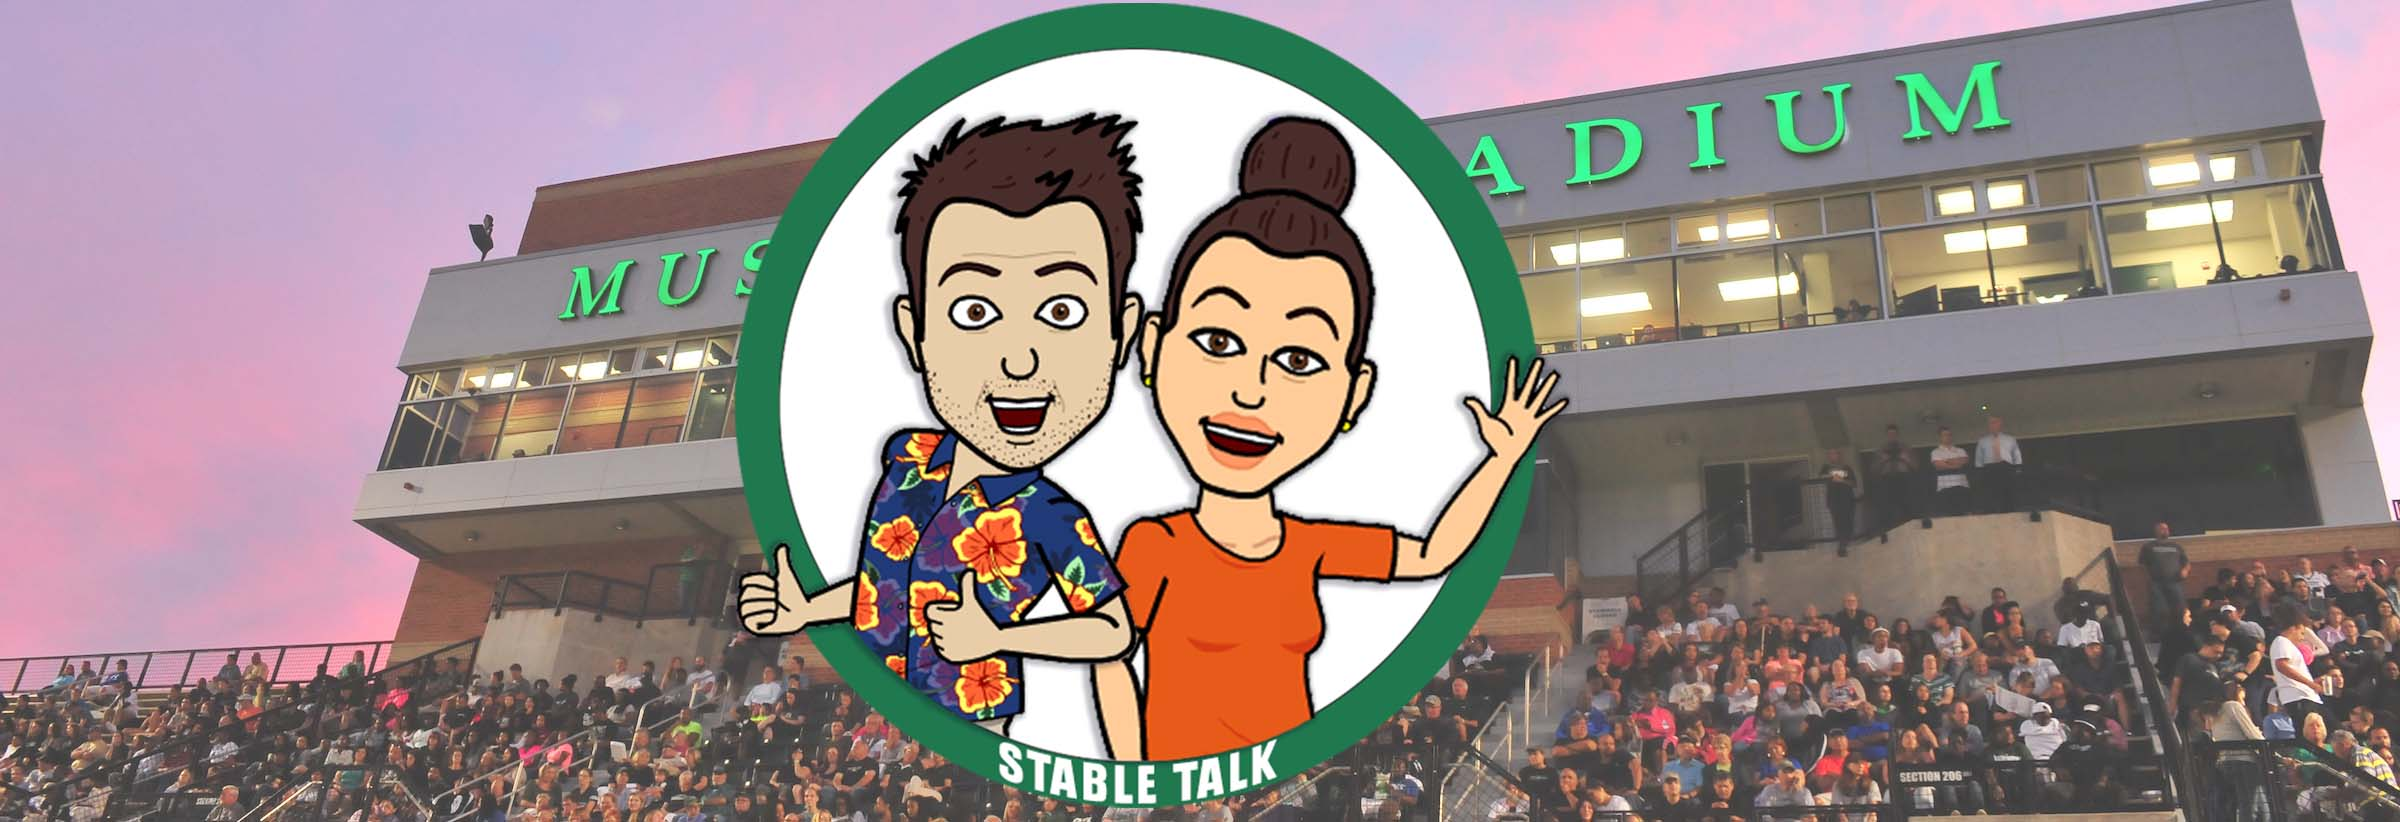 Stable Talk: Morgan Somerville